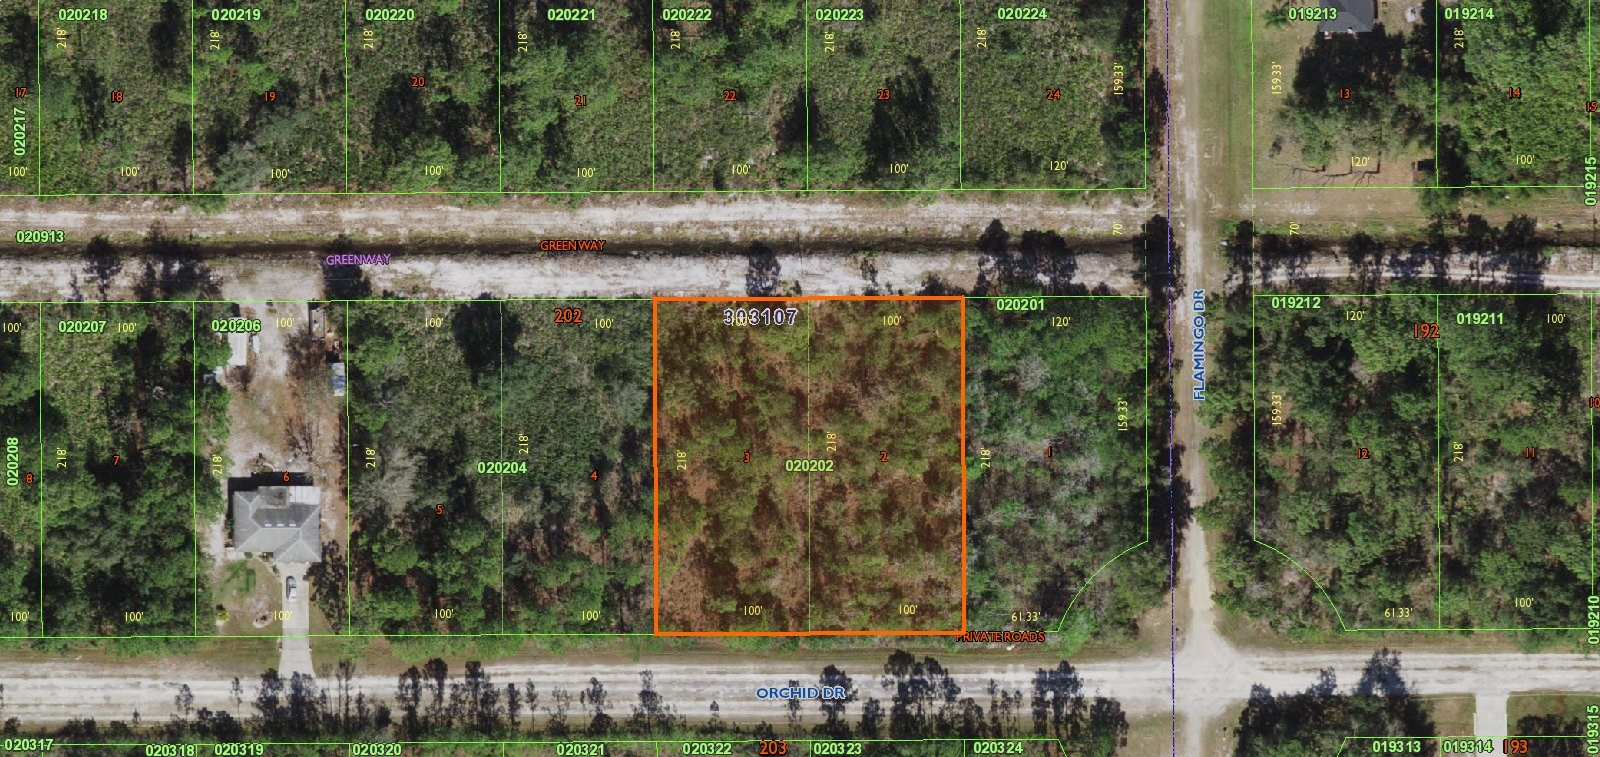 1 ACRE LOT, BUILD YOUR DREAM HOME, CENTRAL FLORIDA, ILE